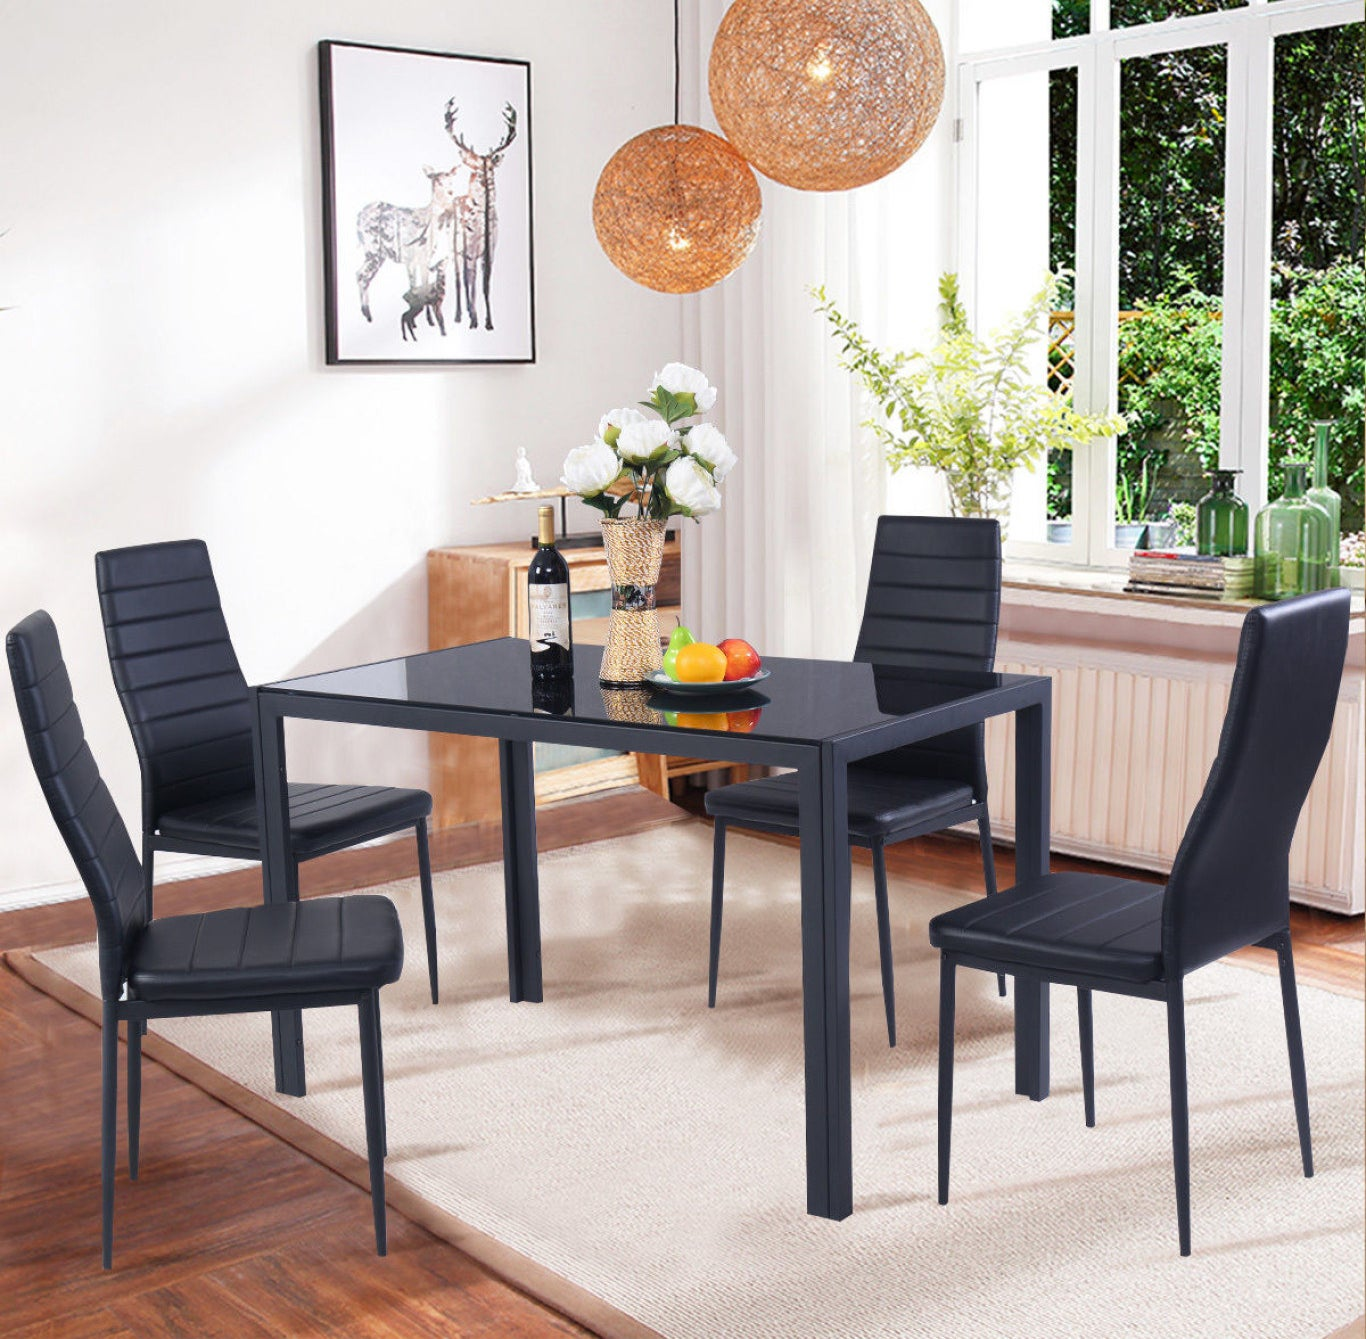 """Promising review: """"This is a beautiful & sturdy dinning set and doesn't look cheap at all. The seats are comfortable and assembly is easy and hassle free."""" —NikPrice: $159.99 (originally $179.99)"""